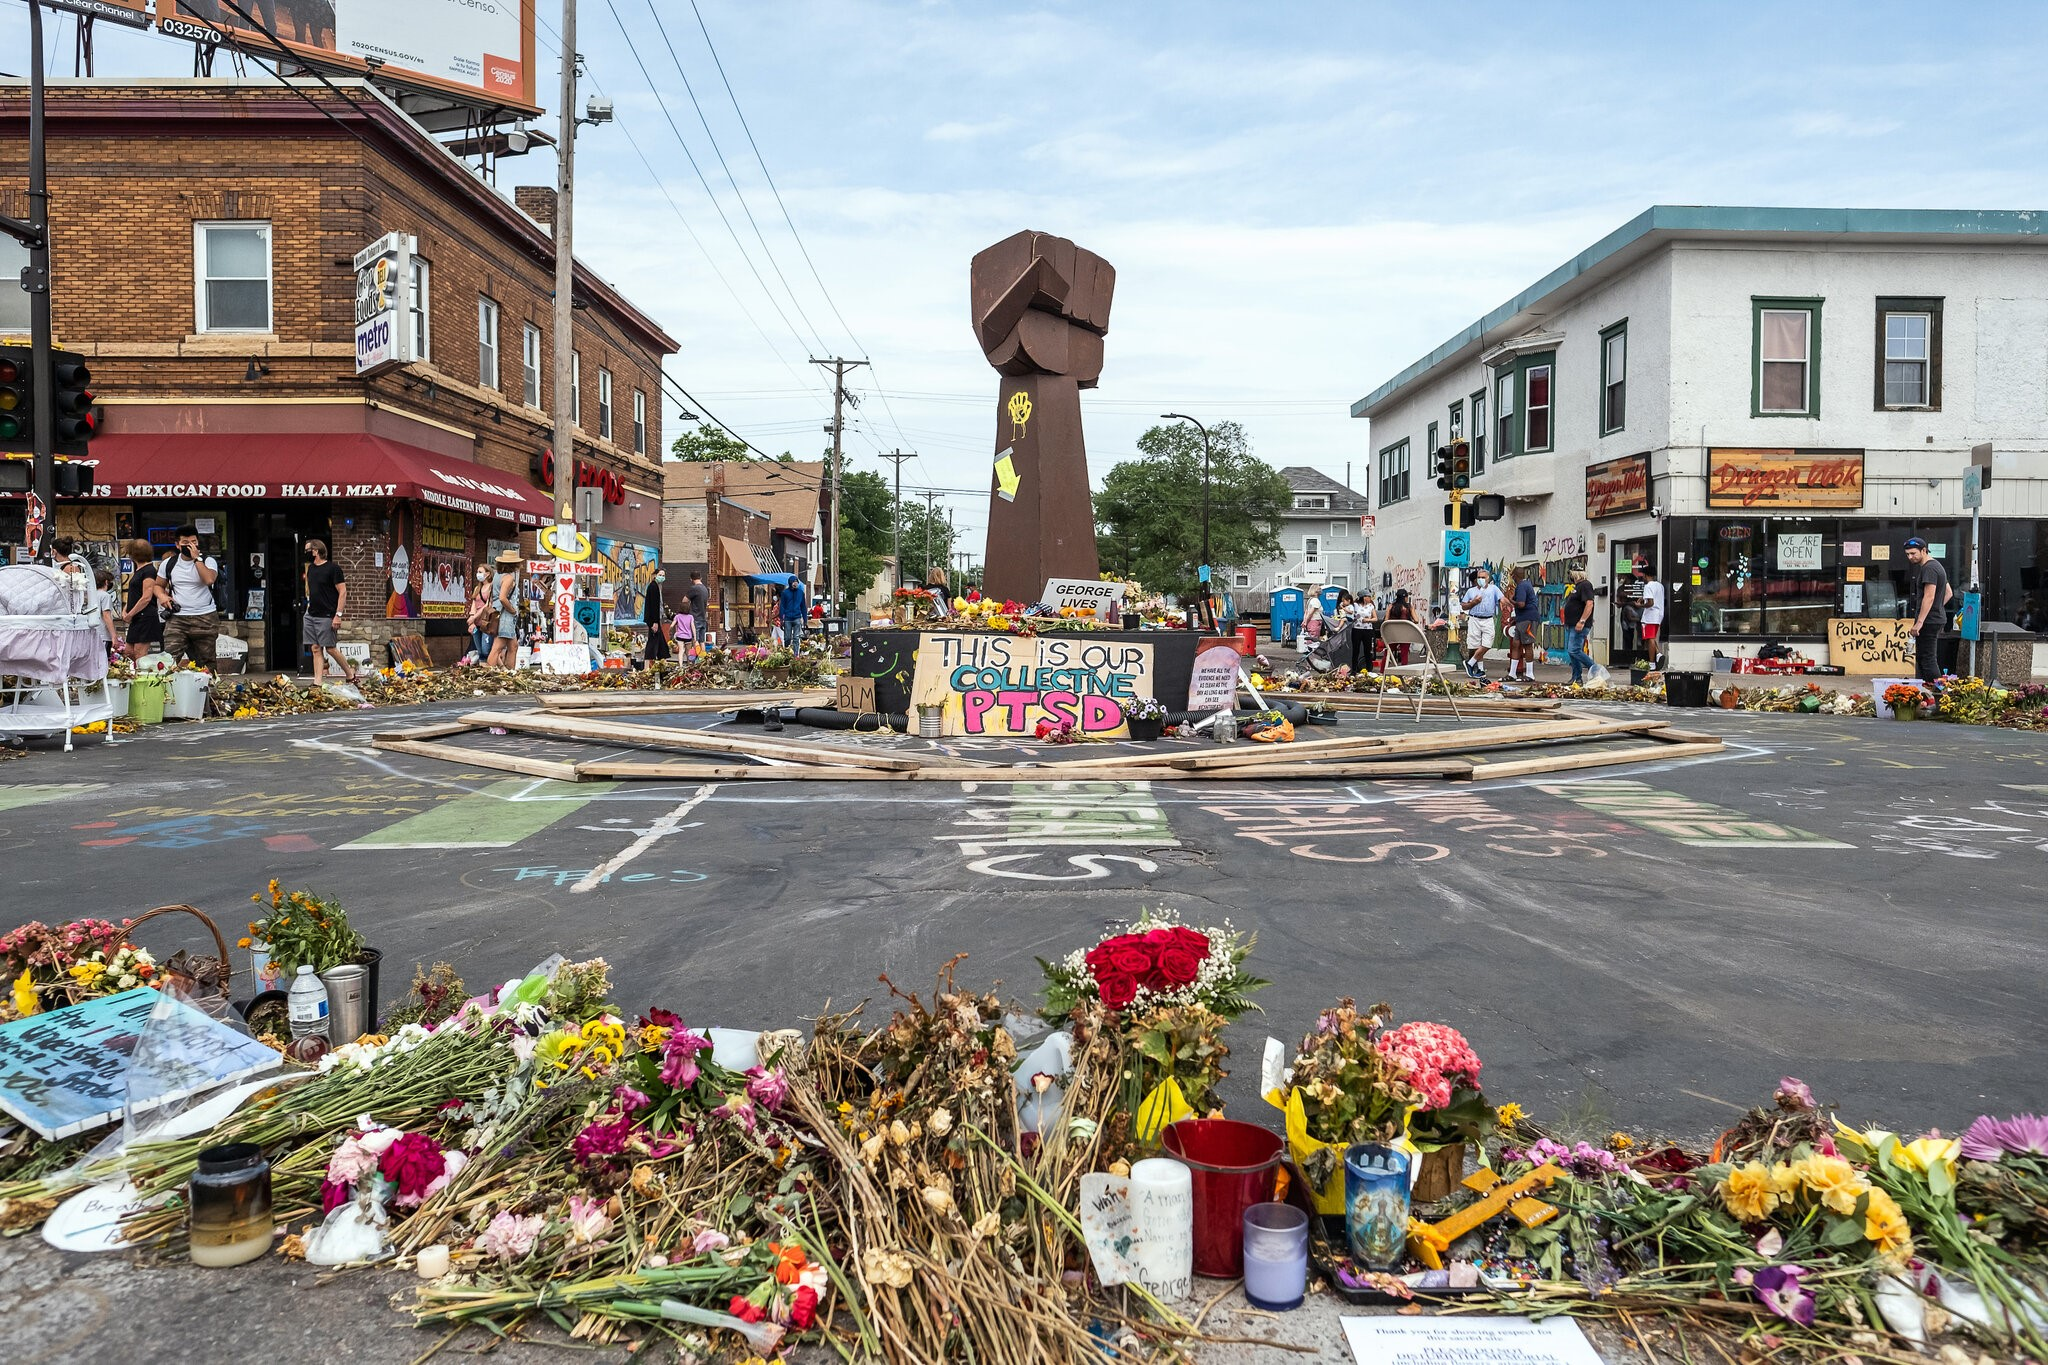 No Justice, No Street: Protect the George Floyd Memorial